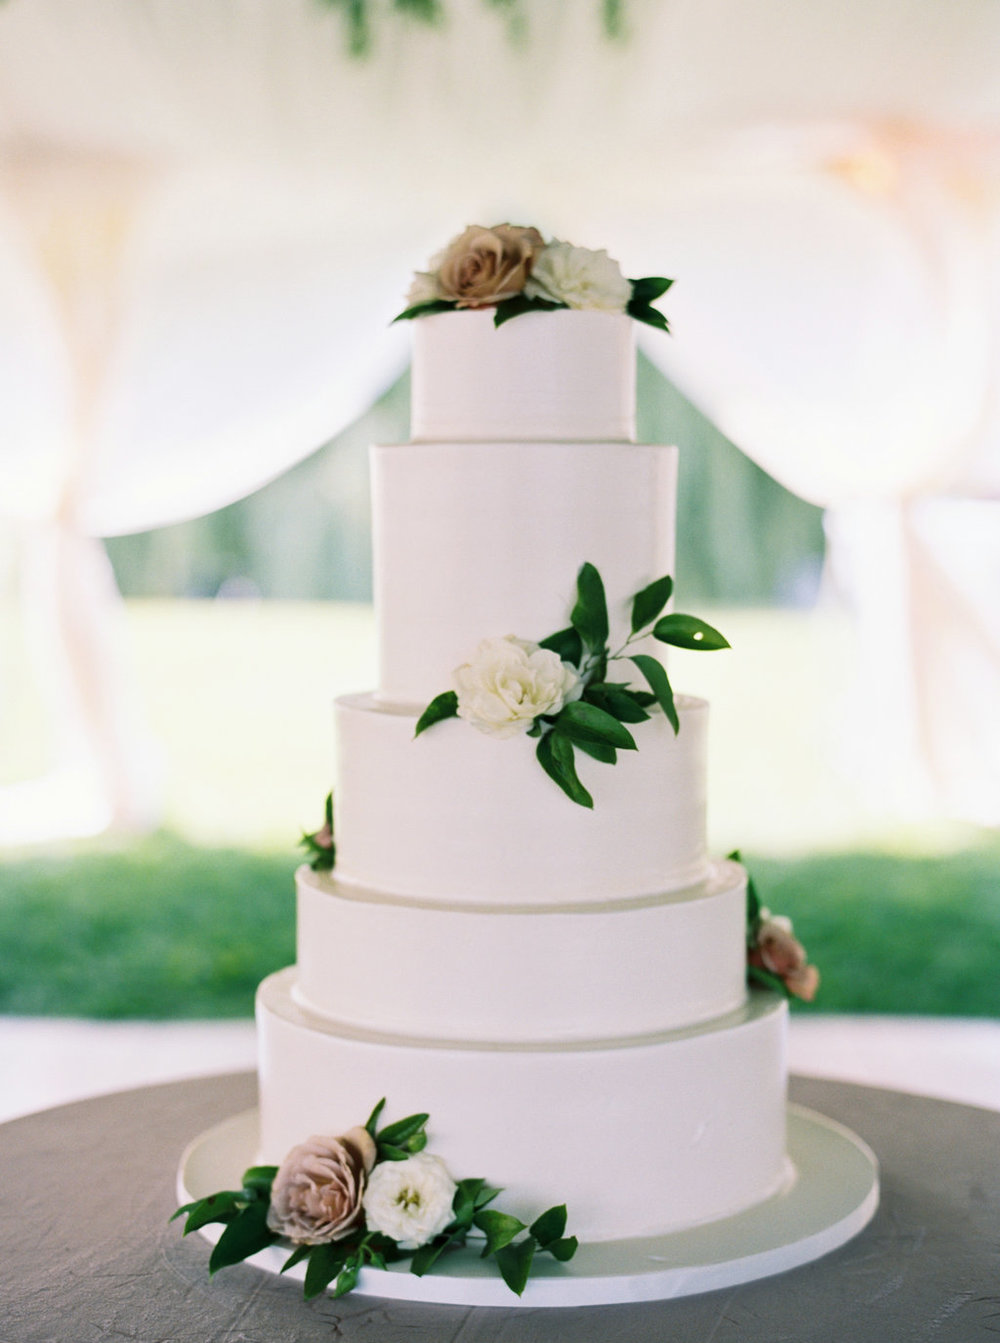 Simple white, tiered wedding cake with fresh flowers.